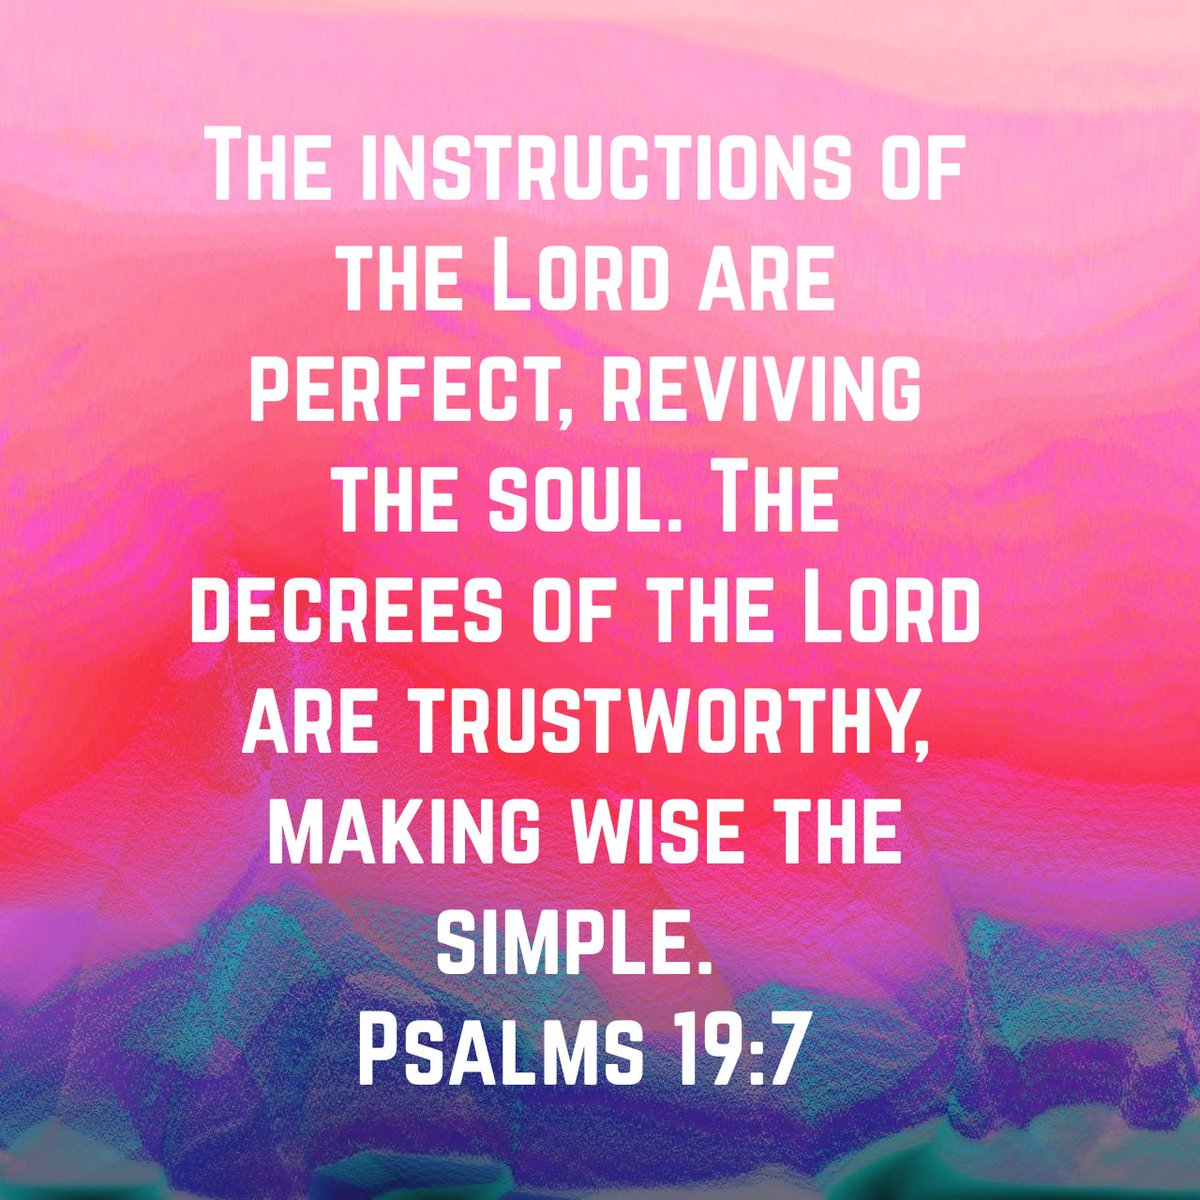 The instructions of the Lord are perfect, reviving the soul. The decrees of the Lord are trustworthy, making wise the simple. Psalms 19:7 NLT  https://t.co/vSZIN9dqDE https://t.co/tTrPC9wM52